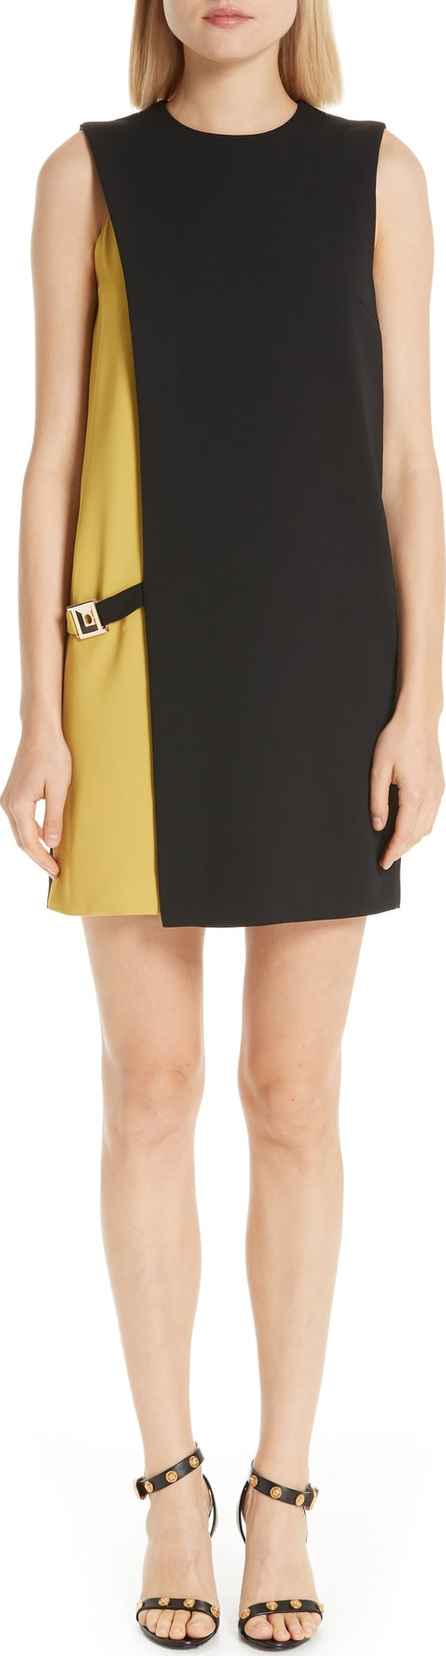 Versace Collection Versace Colorblock Shift Dress